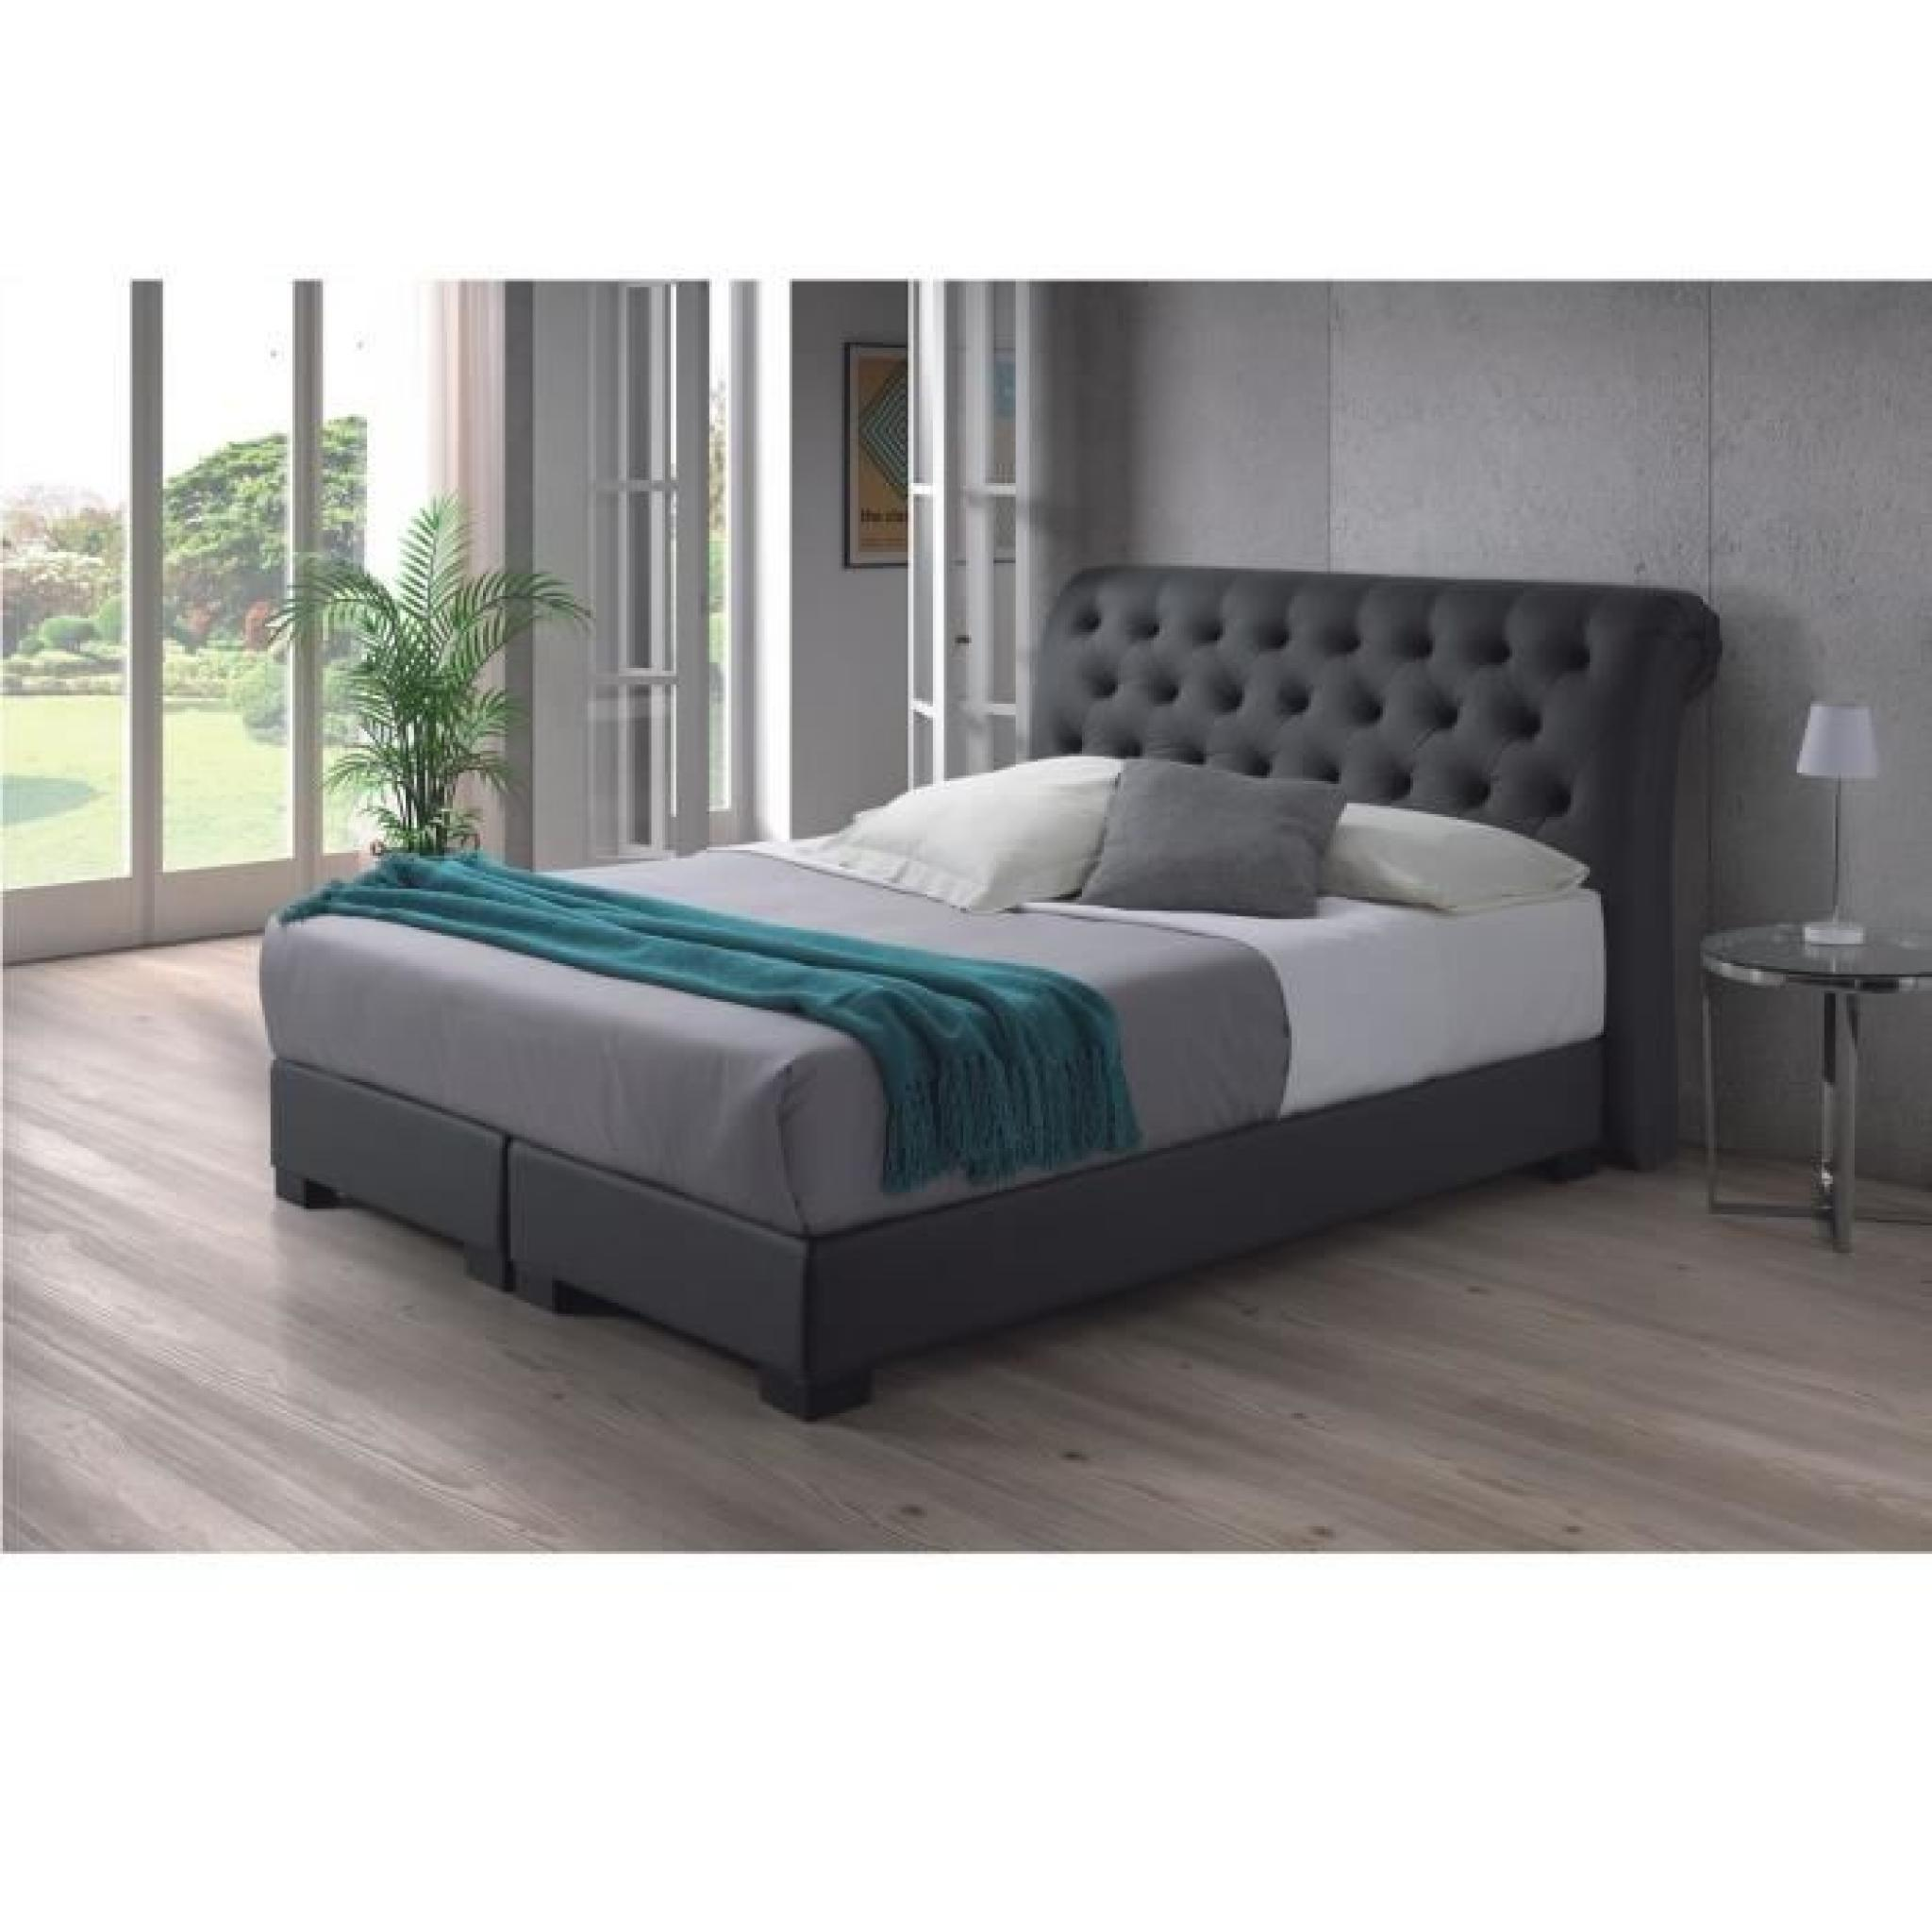 matelas 180 x 200 latest matelas x permaflex confort with matelas 180 x 200 excellent matelas. Black Bedroom Furniture Sets. Home Design Ideas